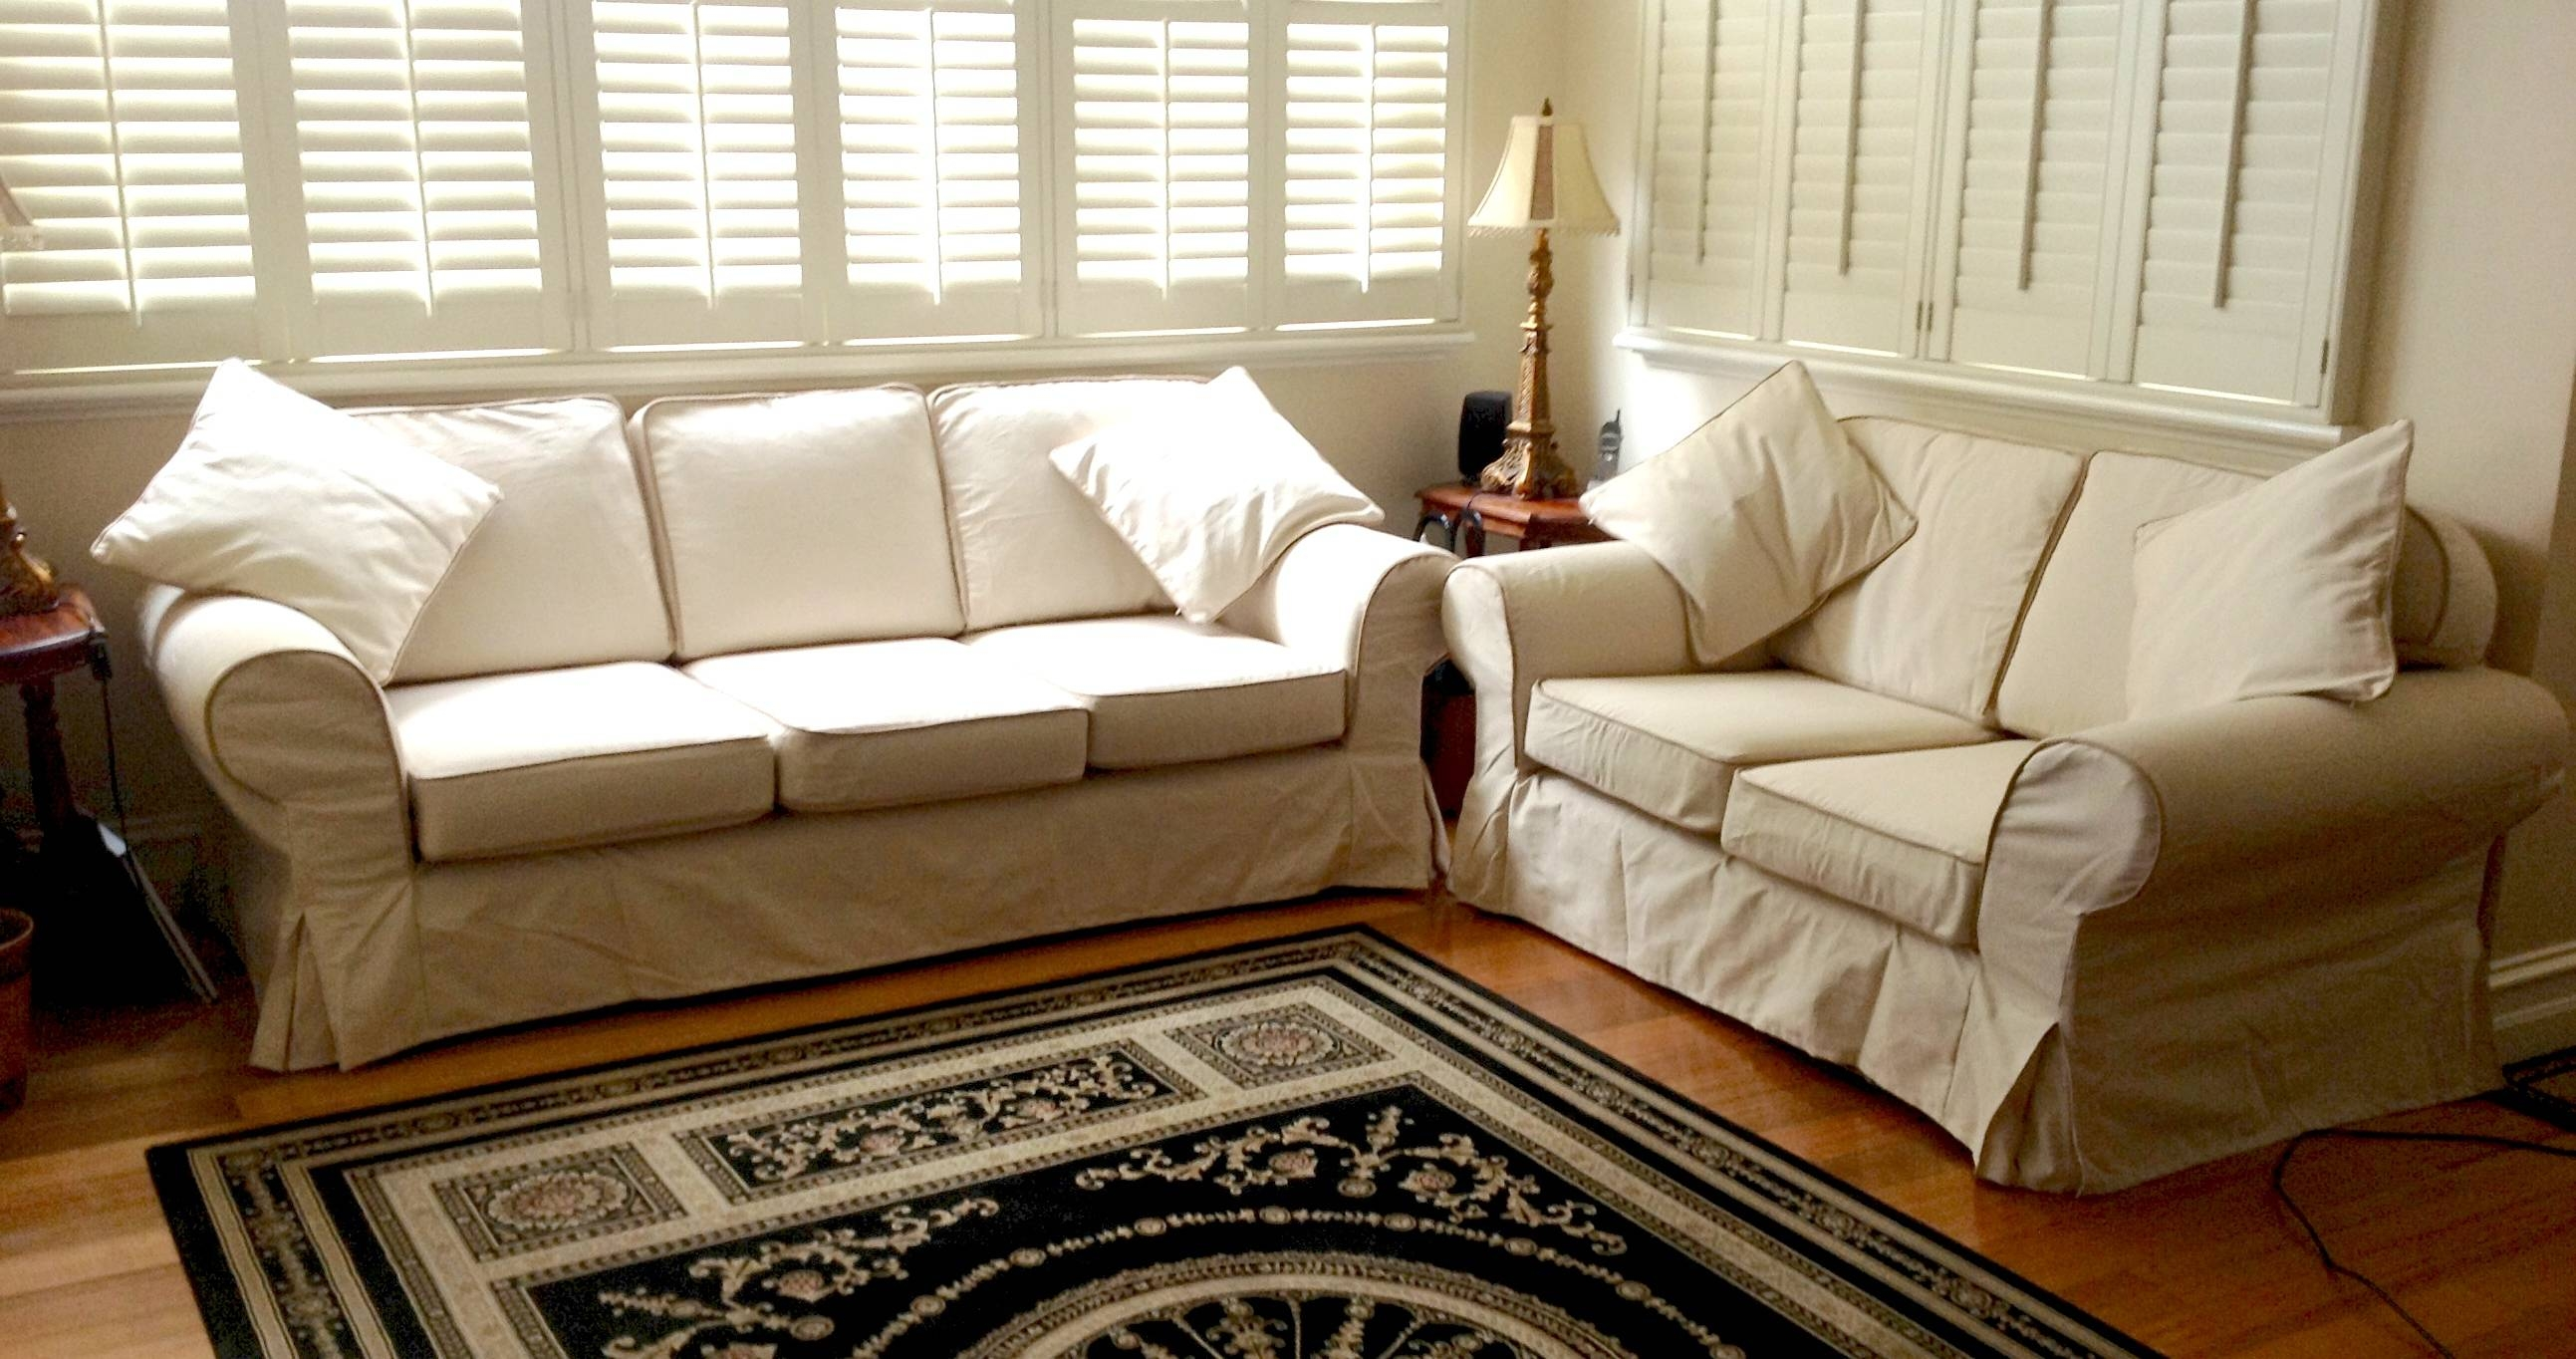 Custom Slipcovers And Couch Cover For Any Sofa Online inside Slipcover for Leather Sofas (Image 4 of 30)